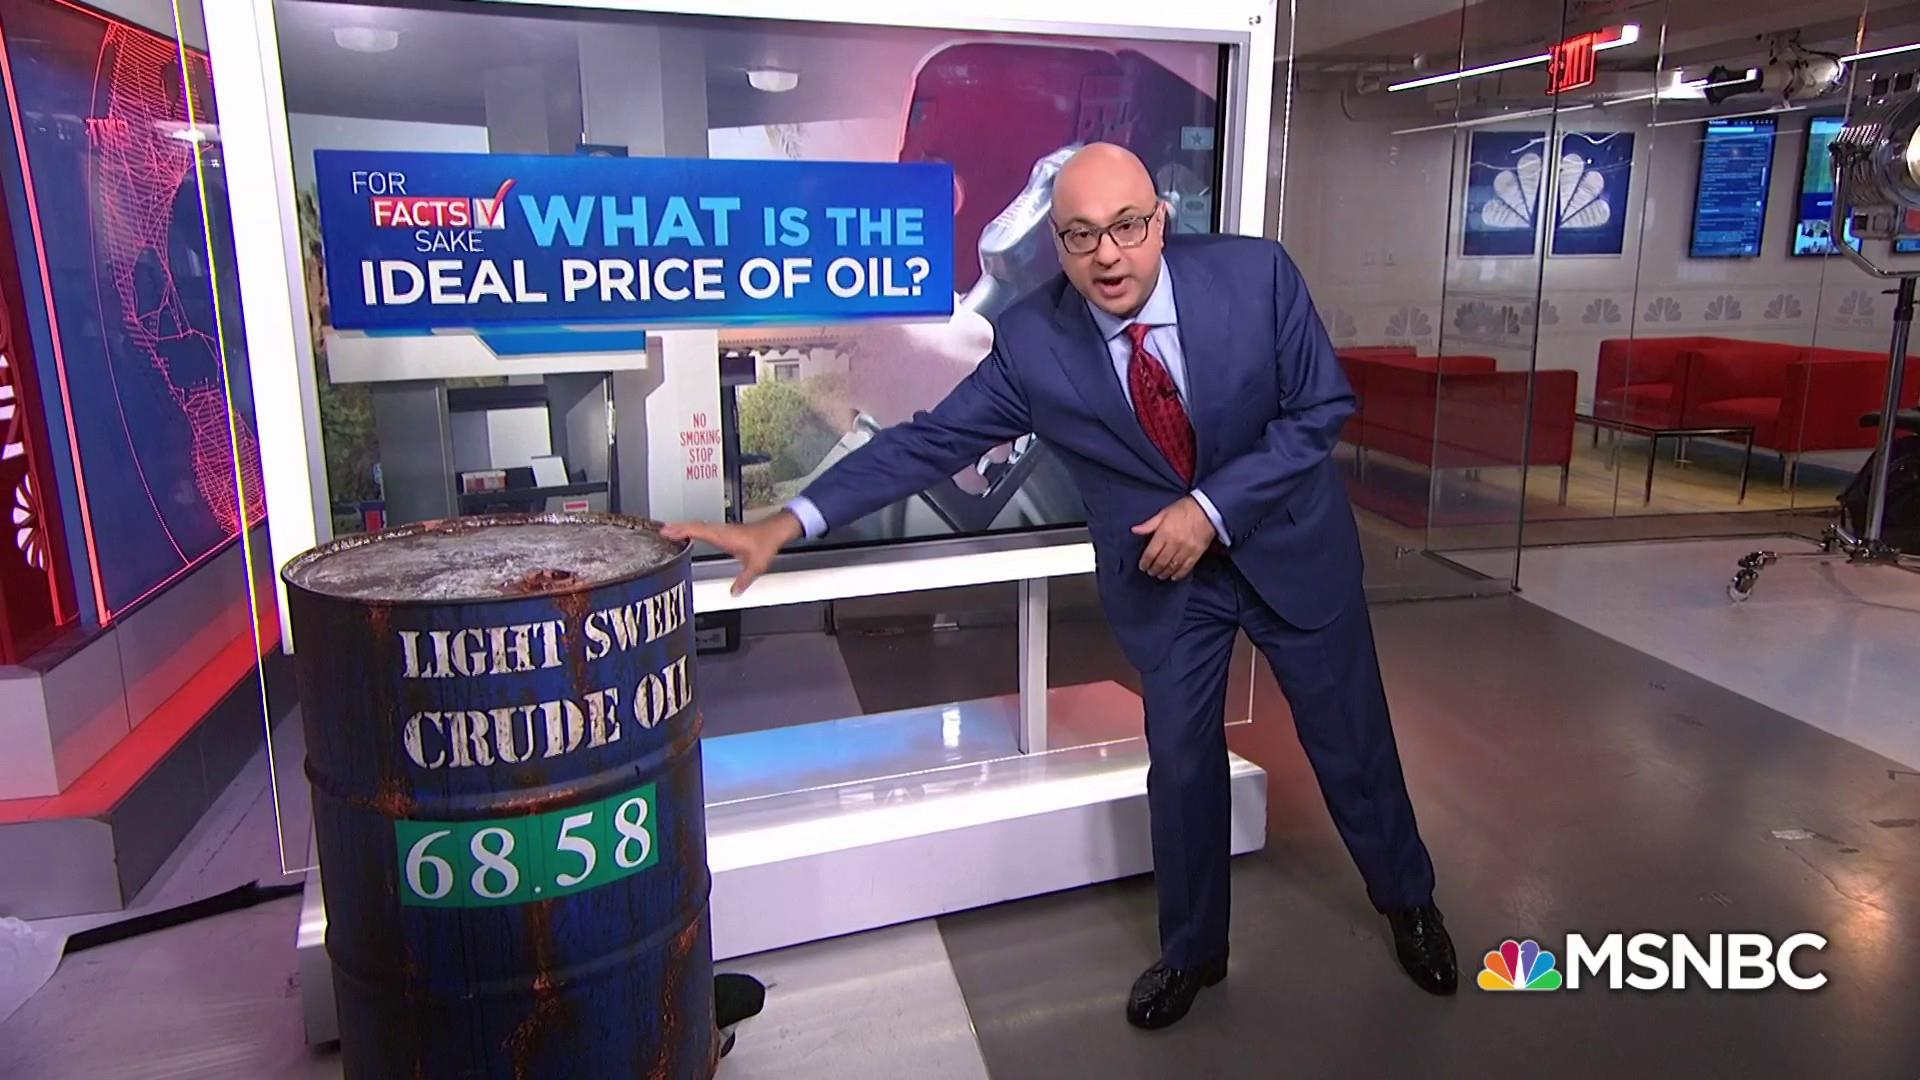 President Trump demanding cut in oil prices to lower gas prices